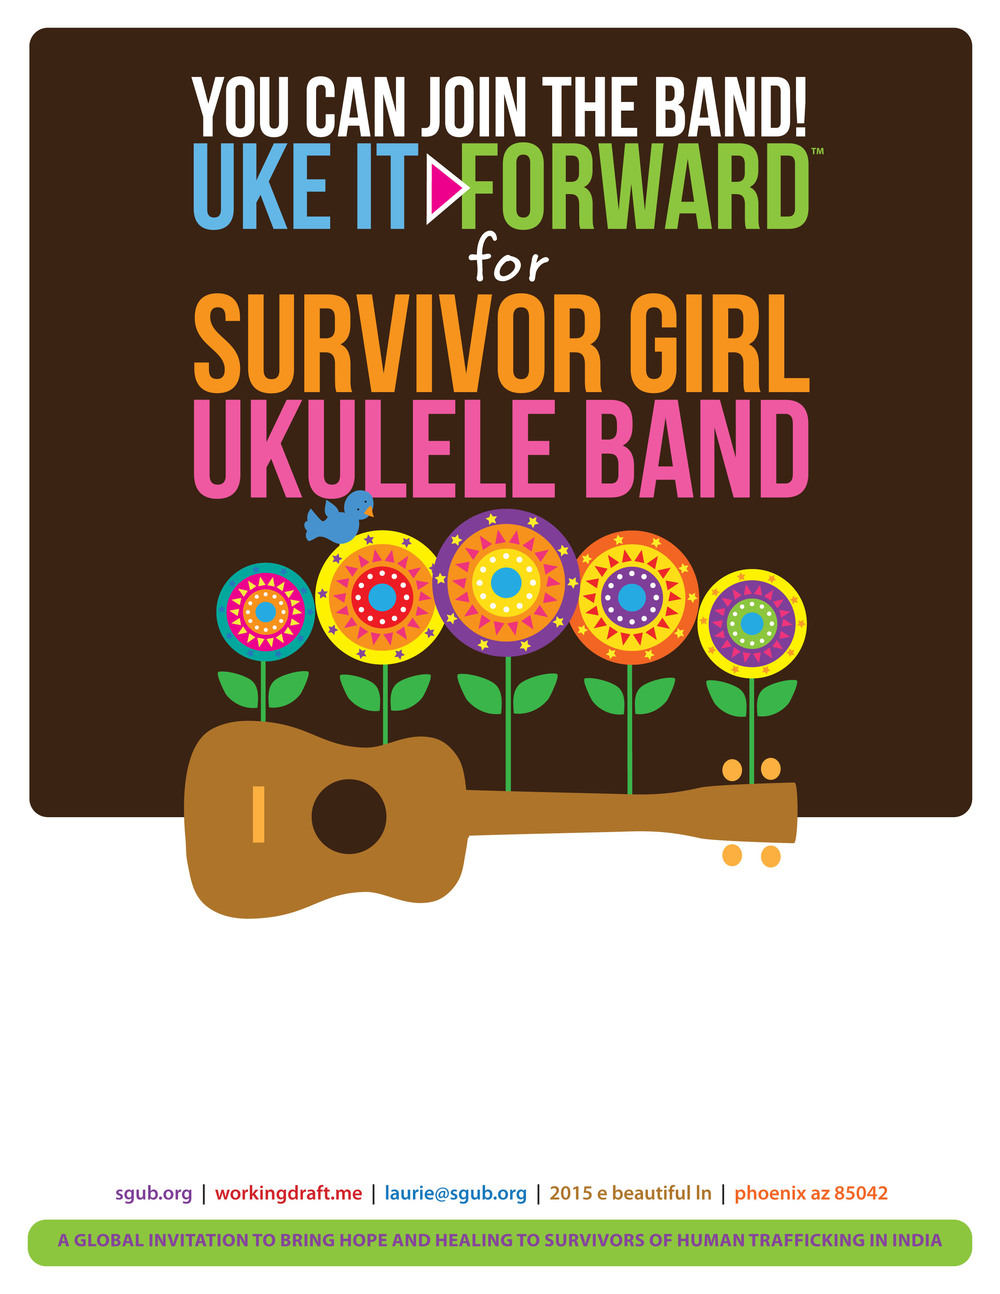 SGUB UKE IT FORWARD flier US Letter brown.jpg